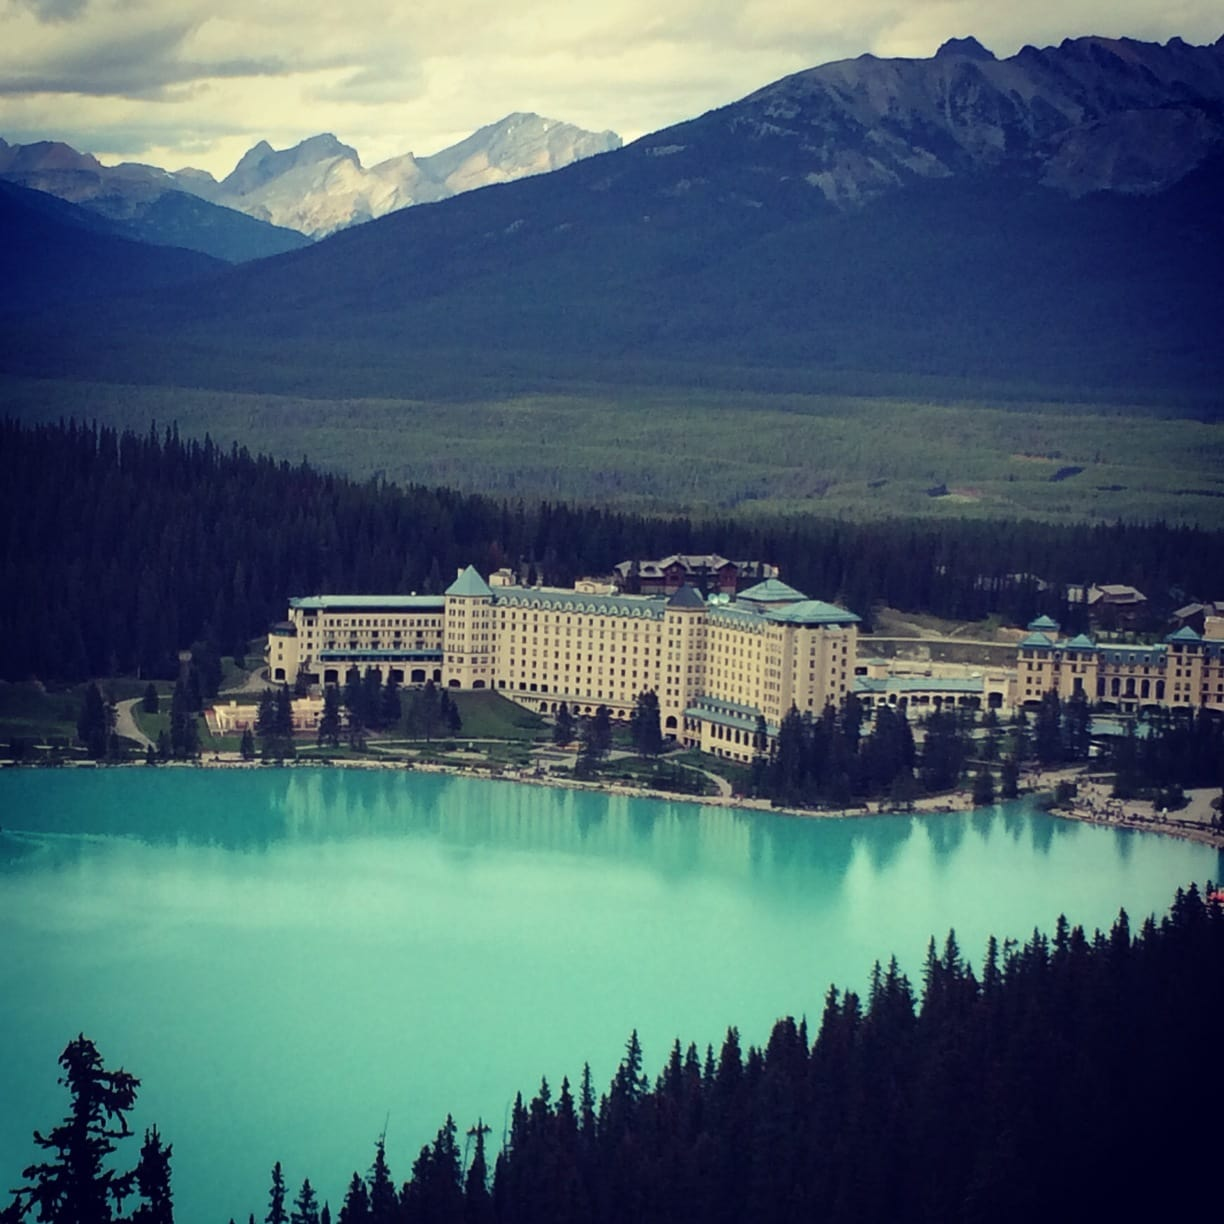 How to Use Trover - picture shared on Trover of Lake Louise